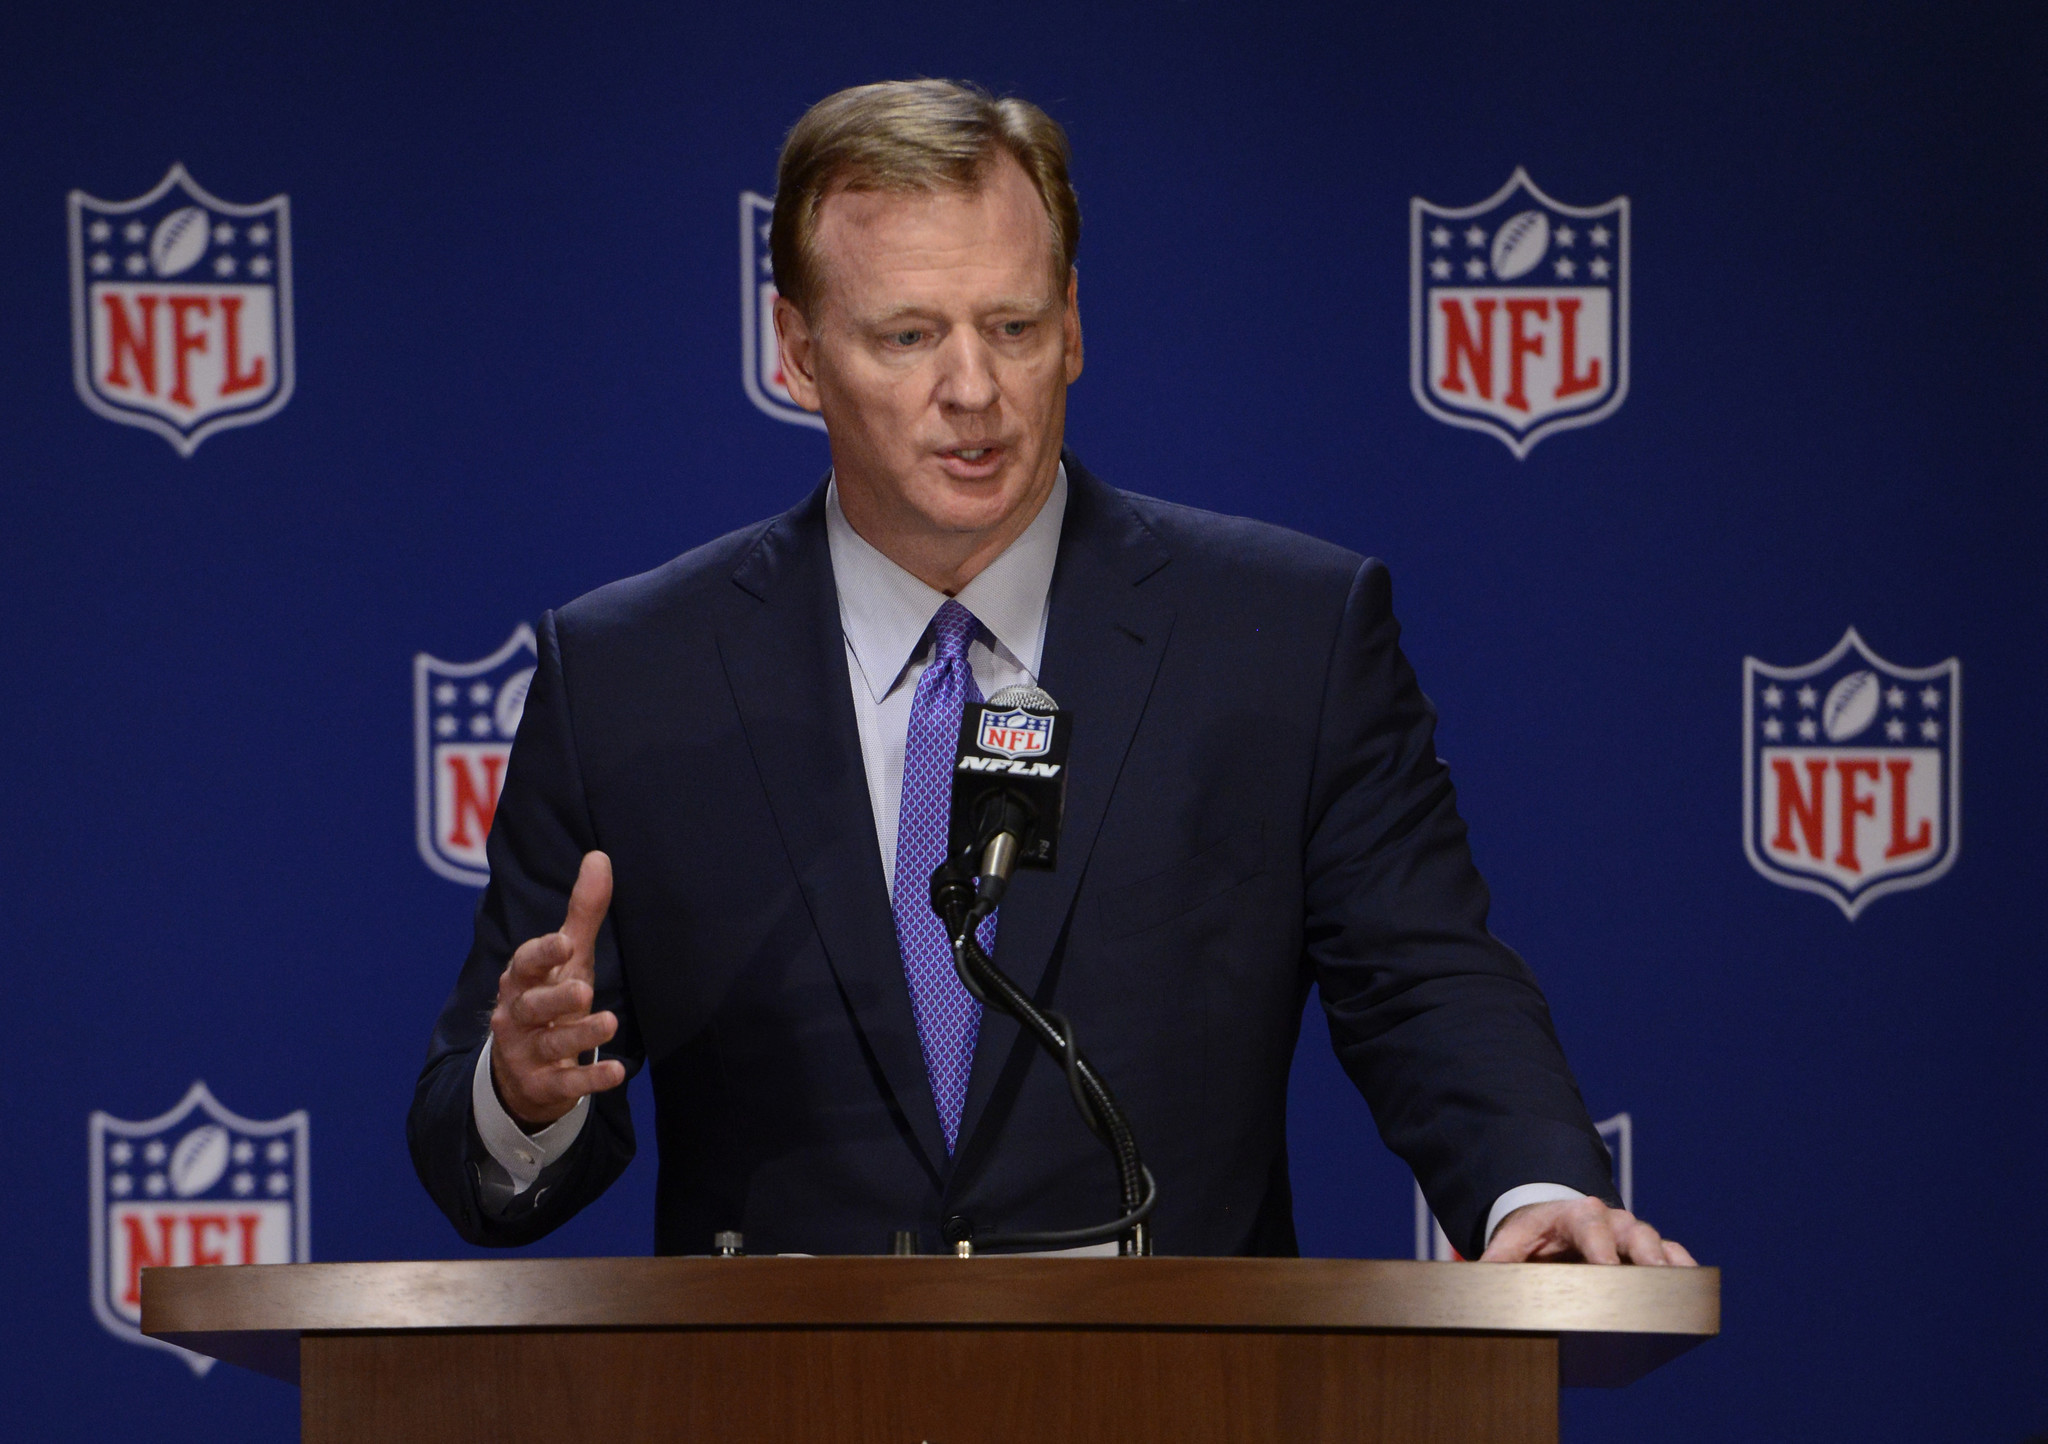 Os-sp-ap-nfl-players-owners-hold-constructive-talks-on-issues-20171017